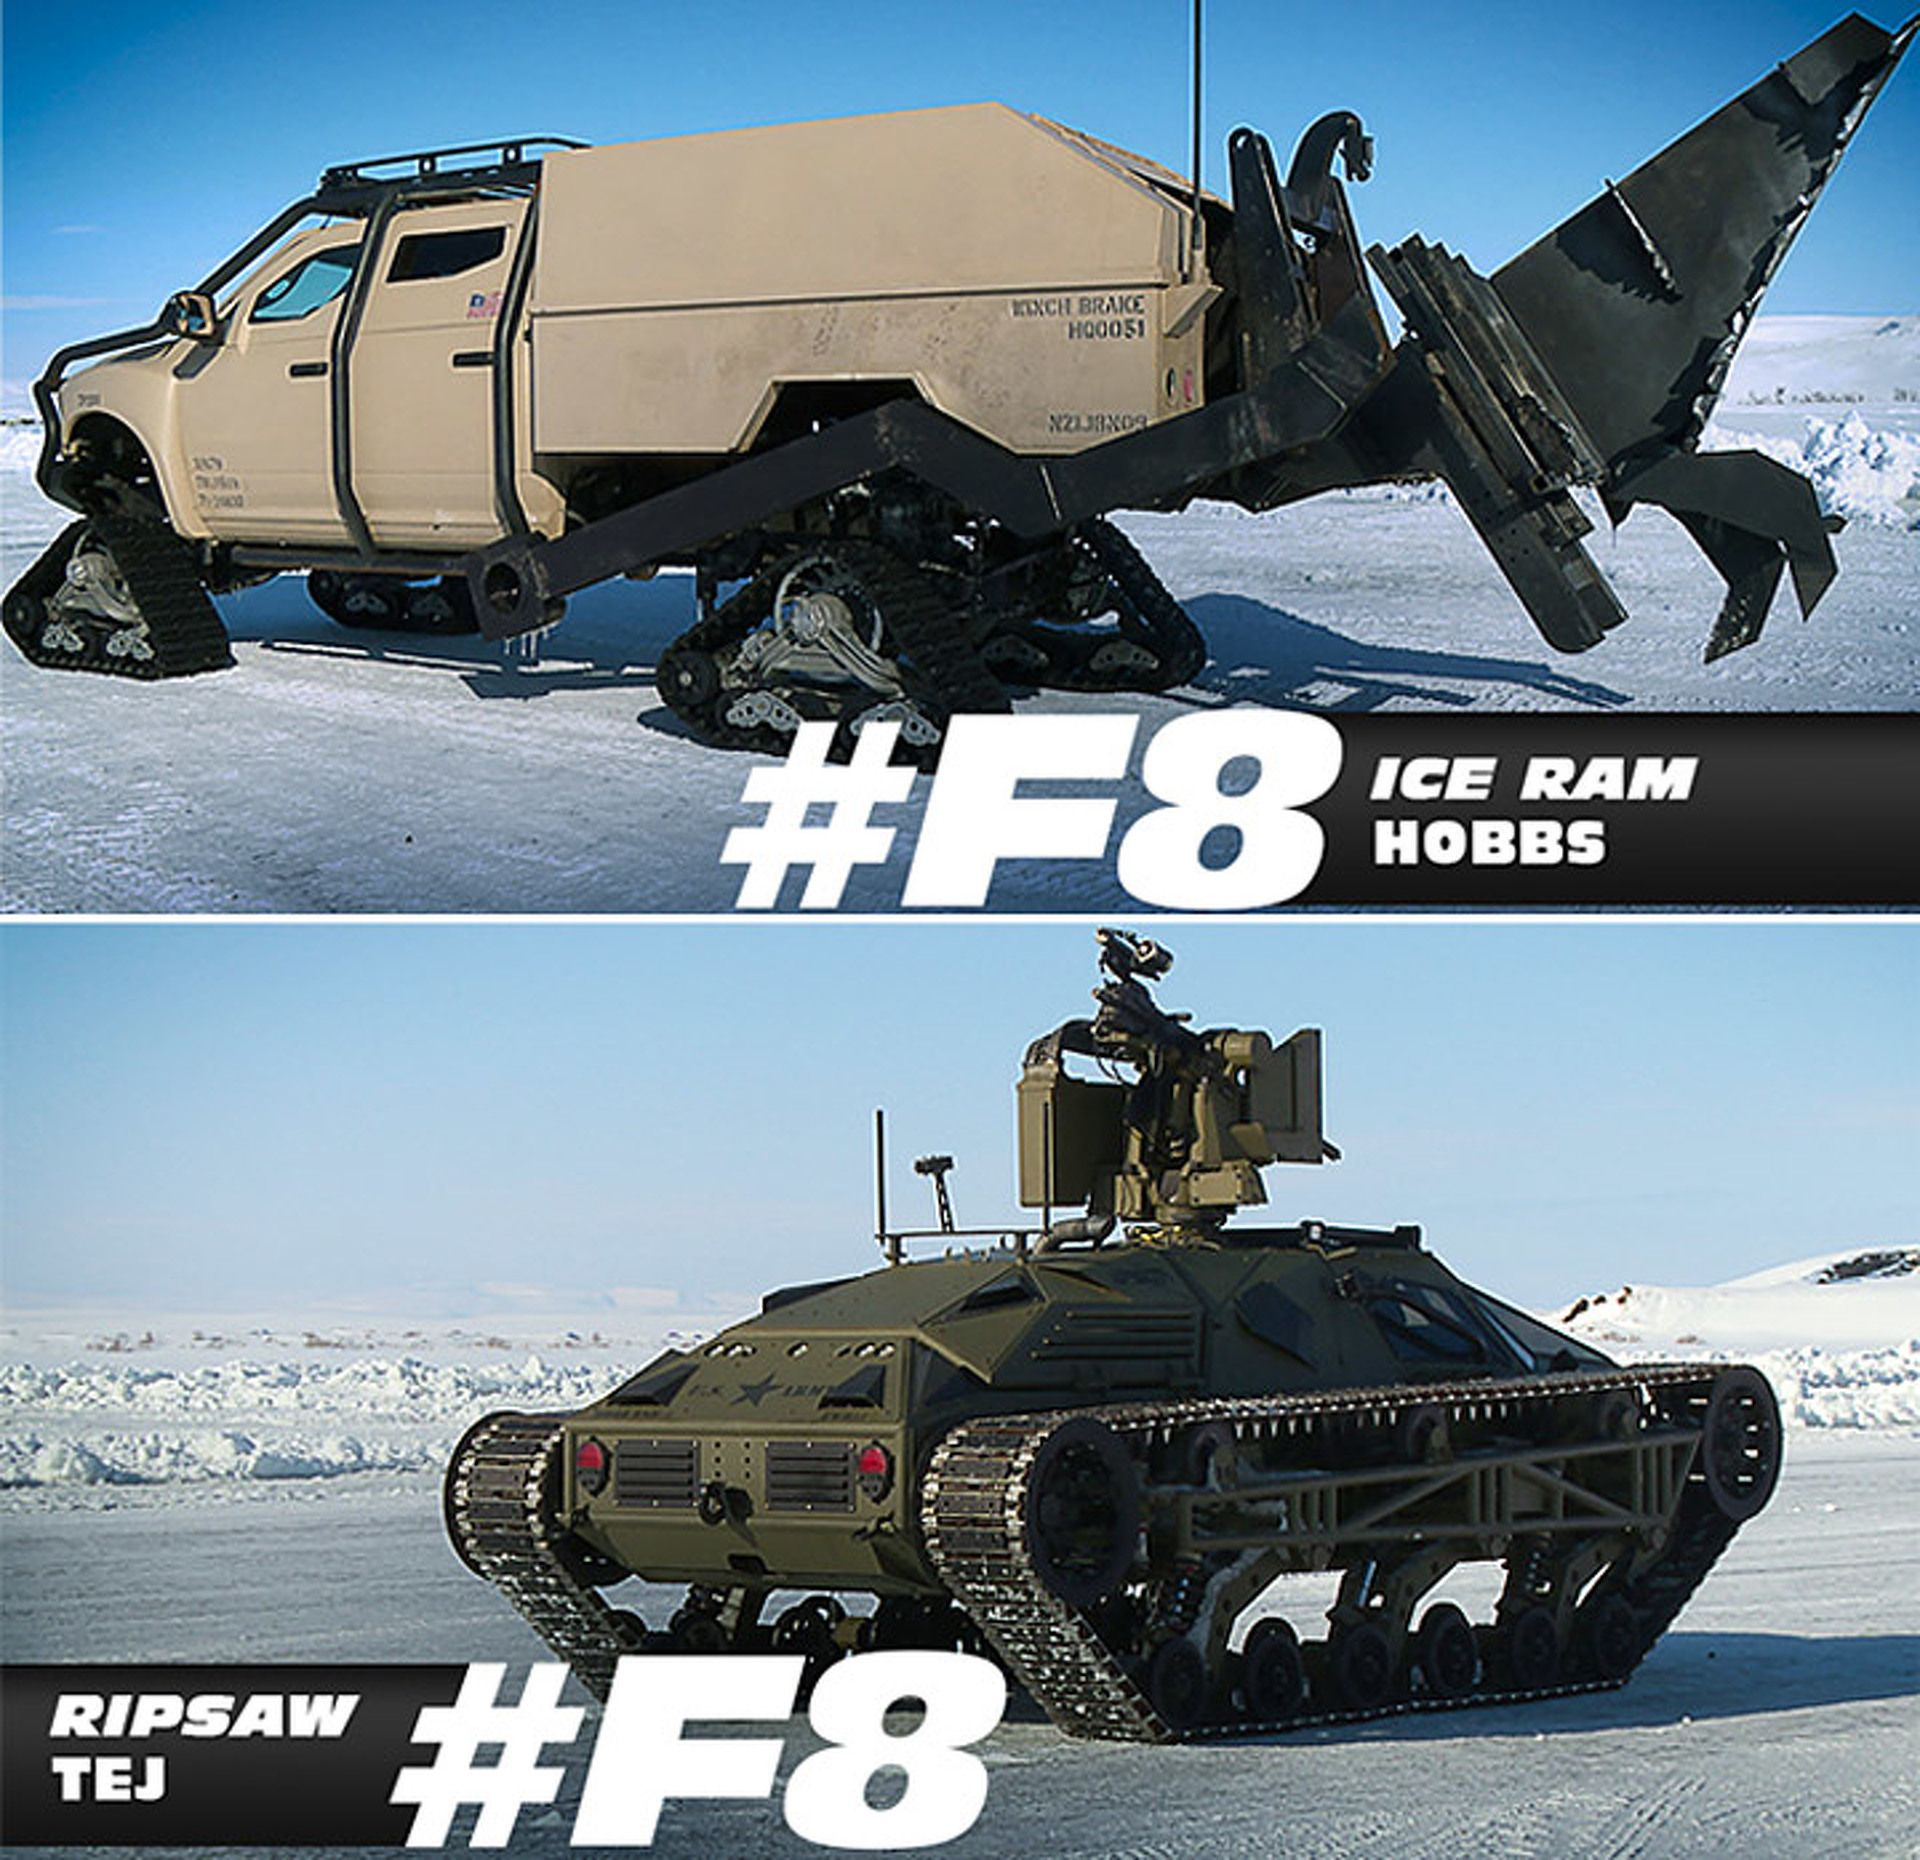 These Are The New Fast And Furious Ice Cars Fate And Furious 8